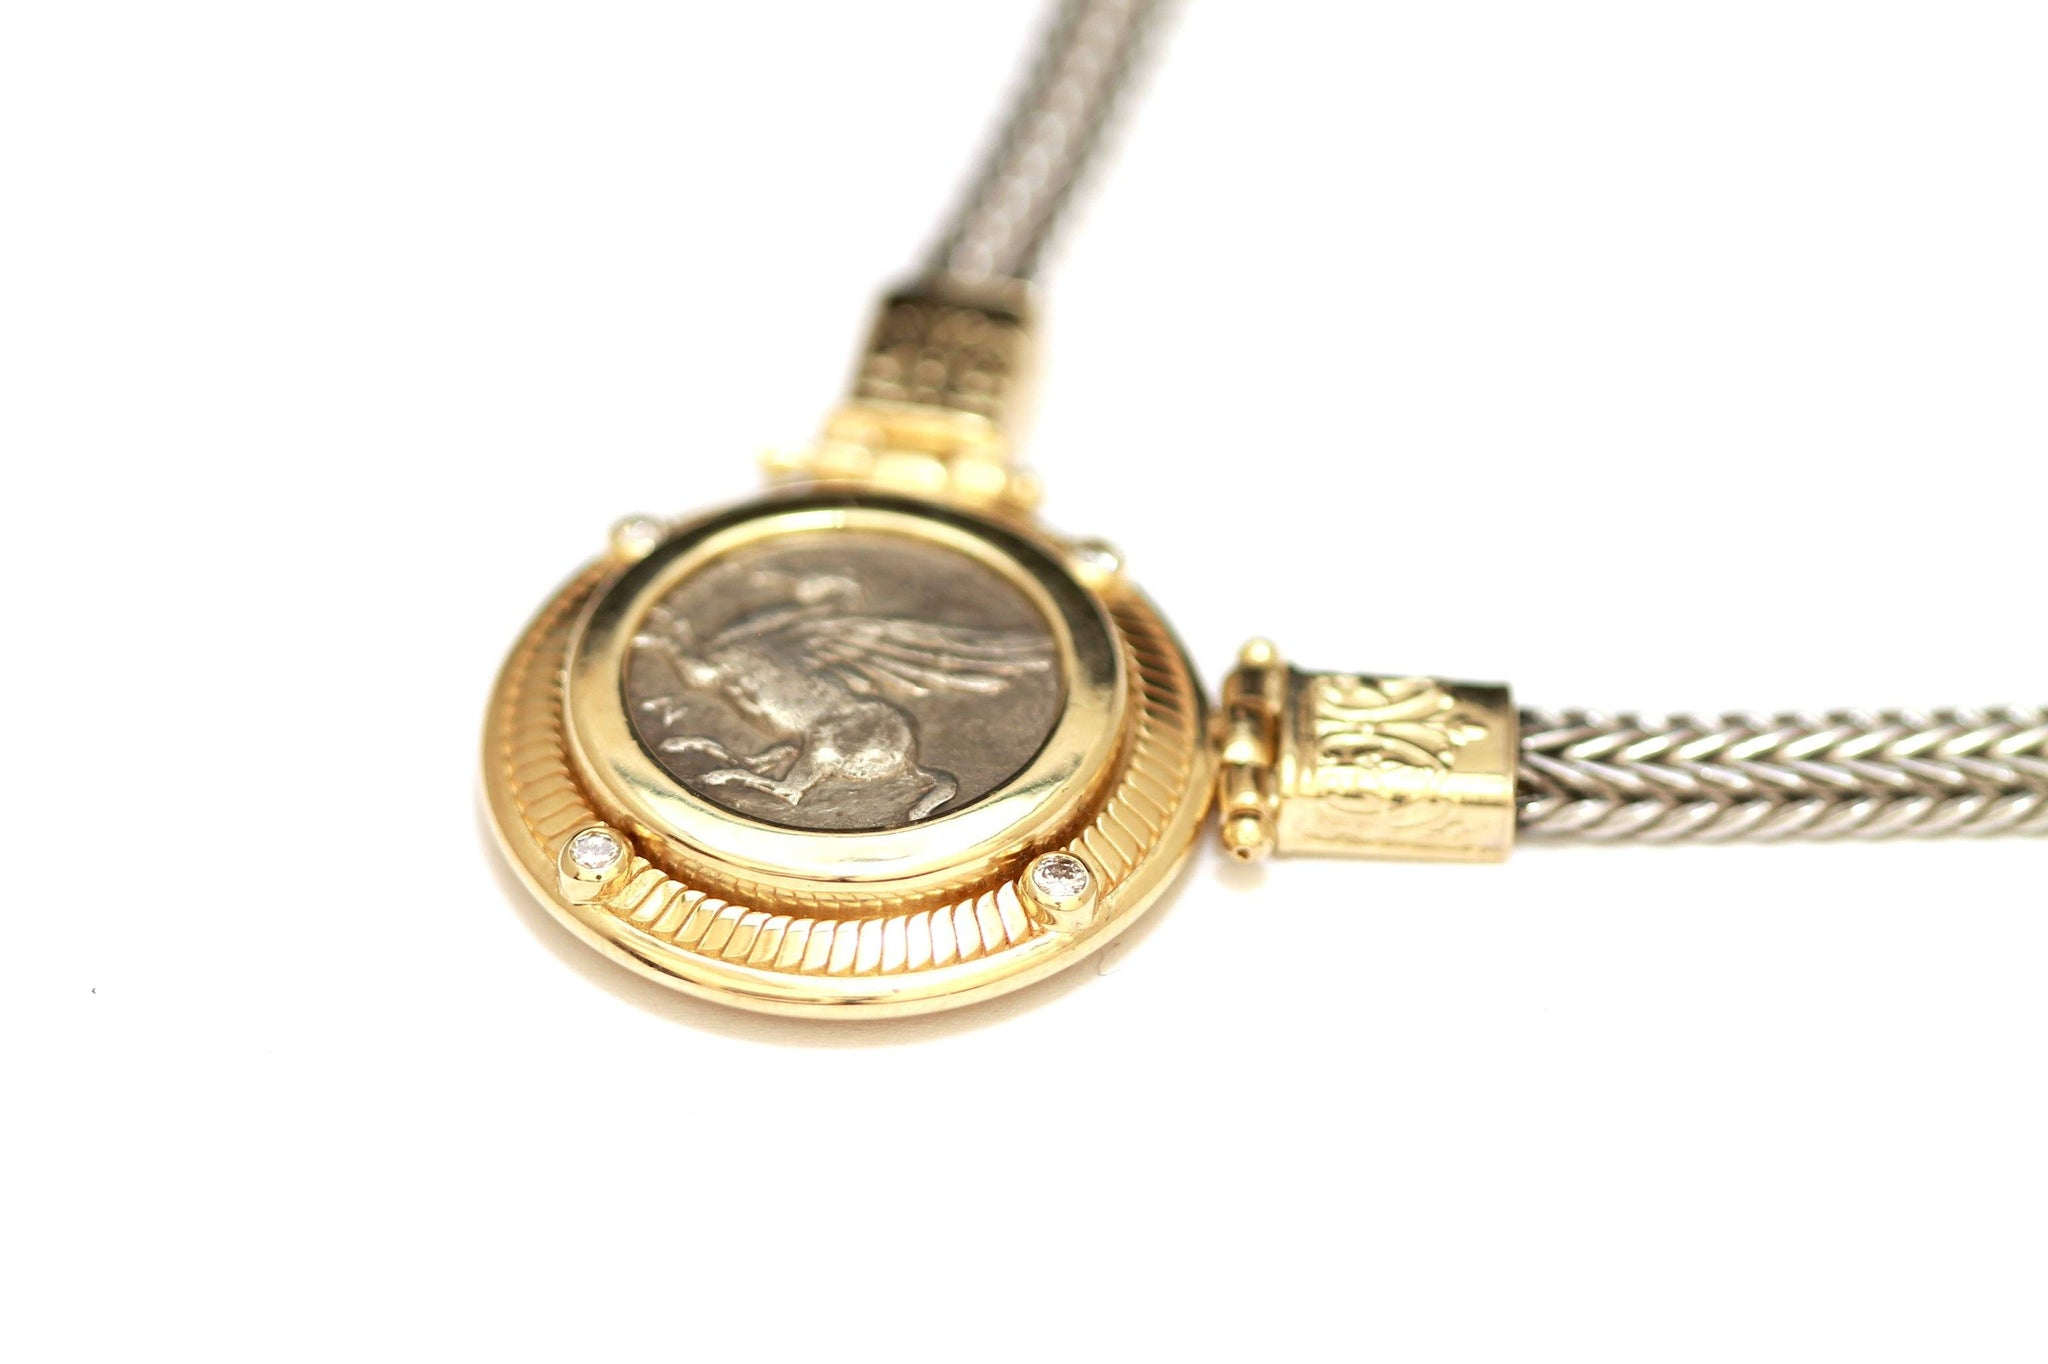 14K Gold Center Necklace, Diamonds (0.16 Ct), Silver Chain, Greek Coin, Pegasus, Cert. ID13115 - Erez Ancient Coin Jewelry